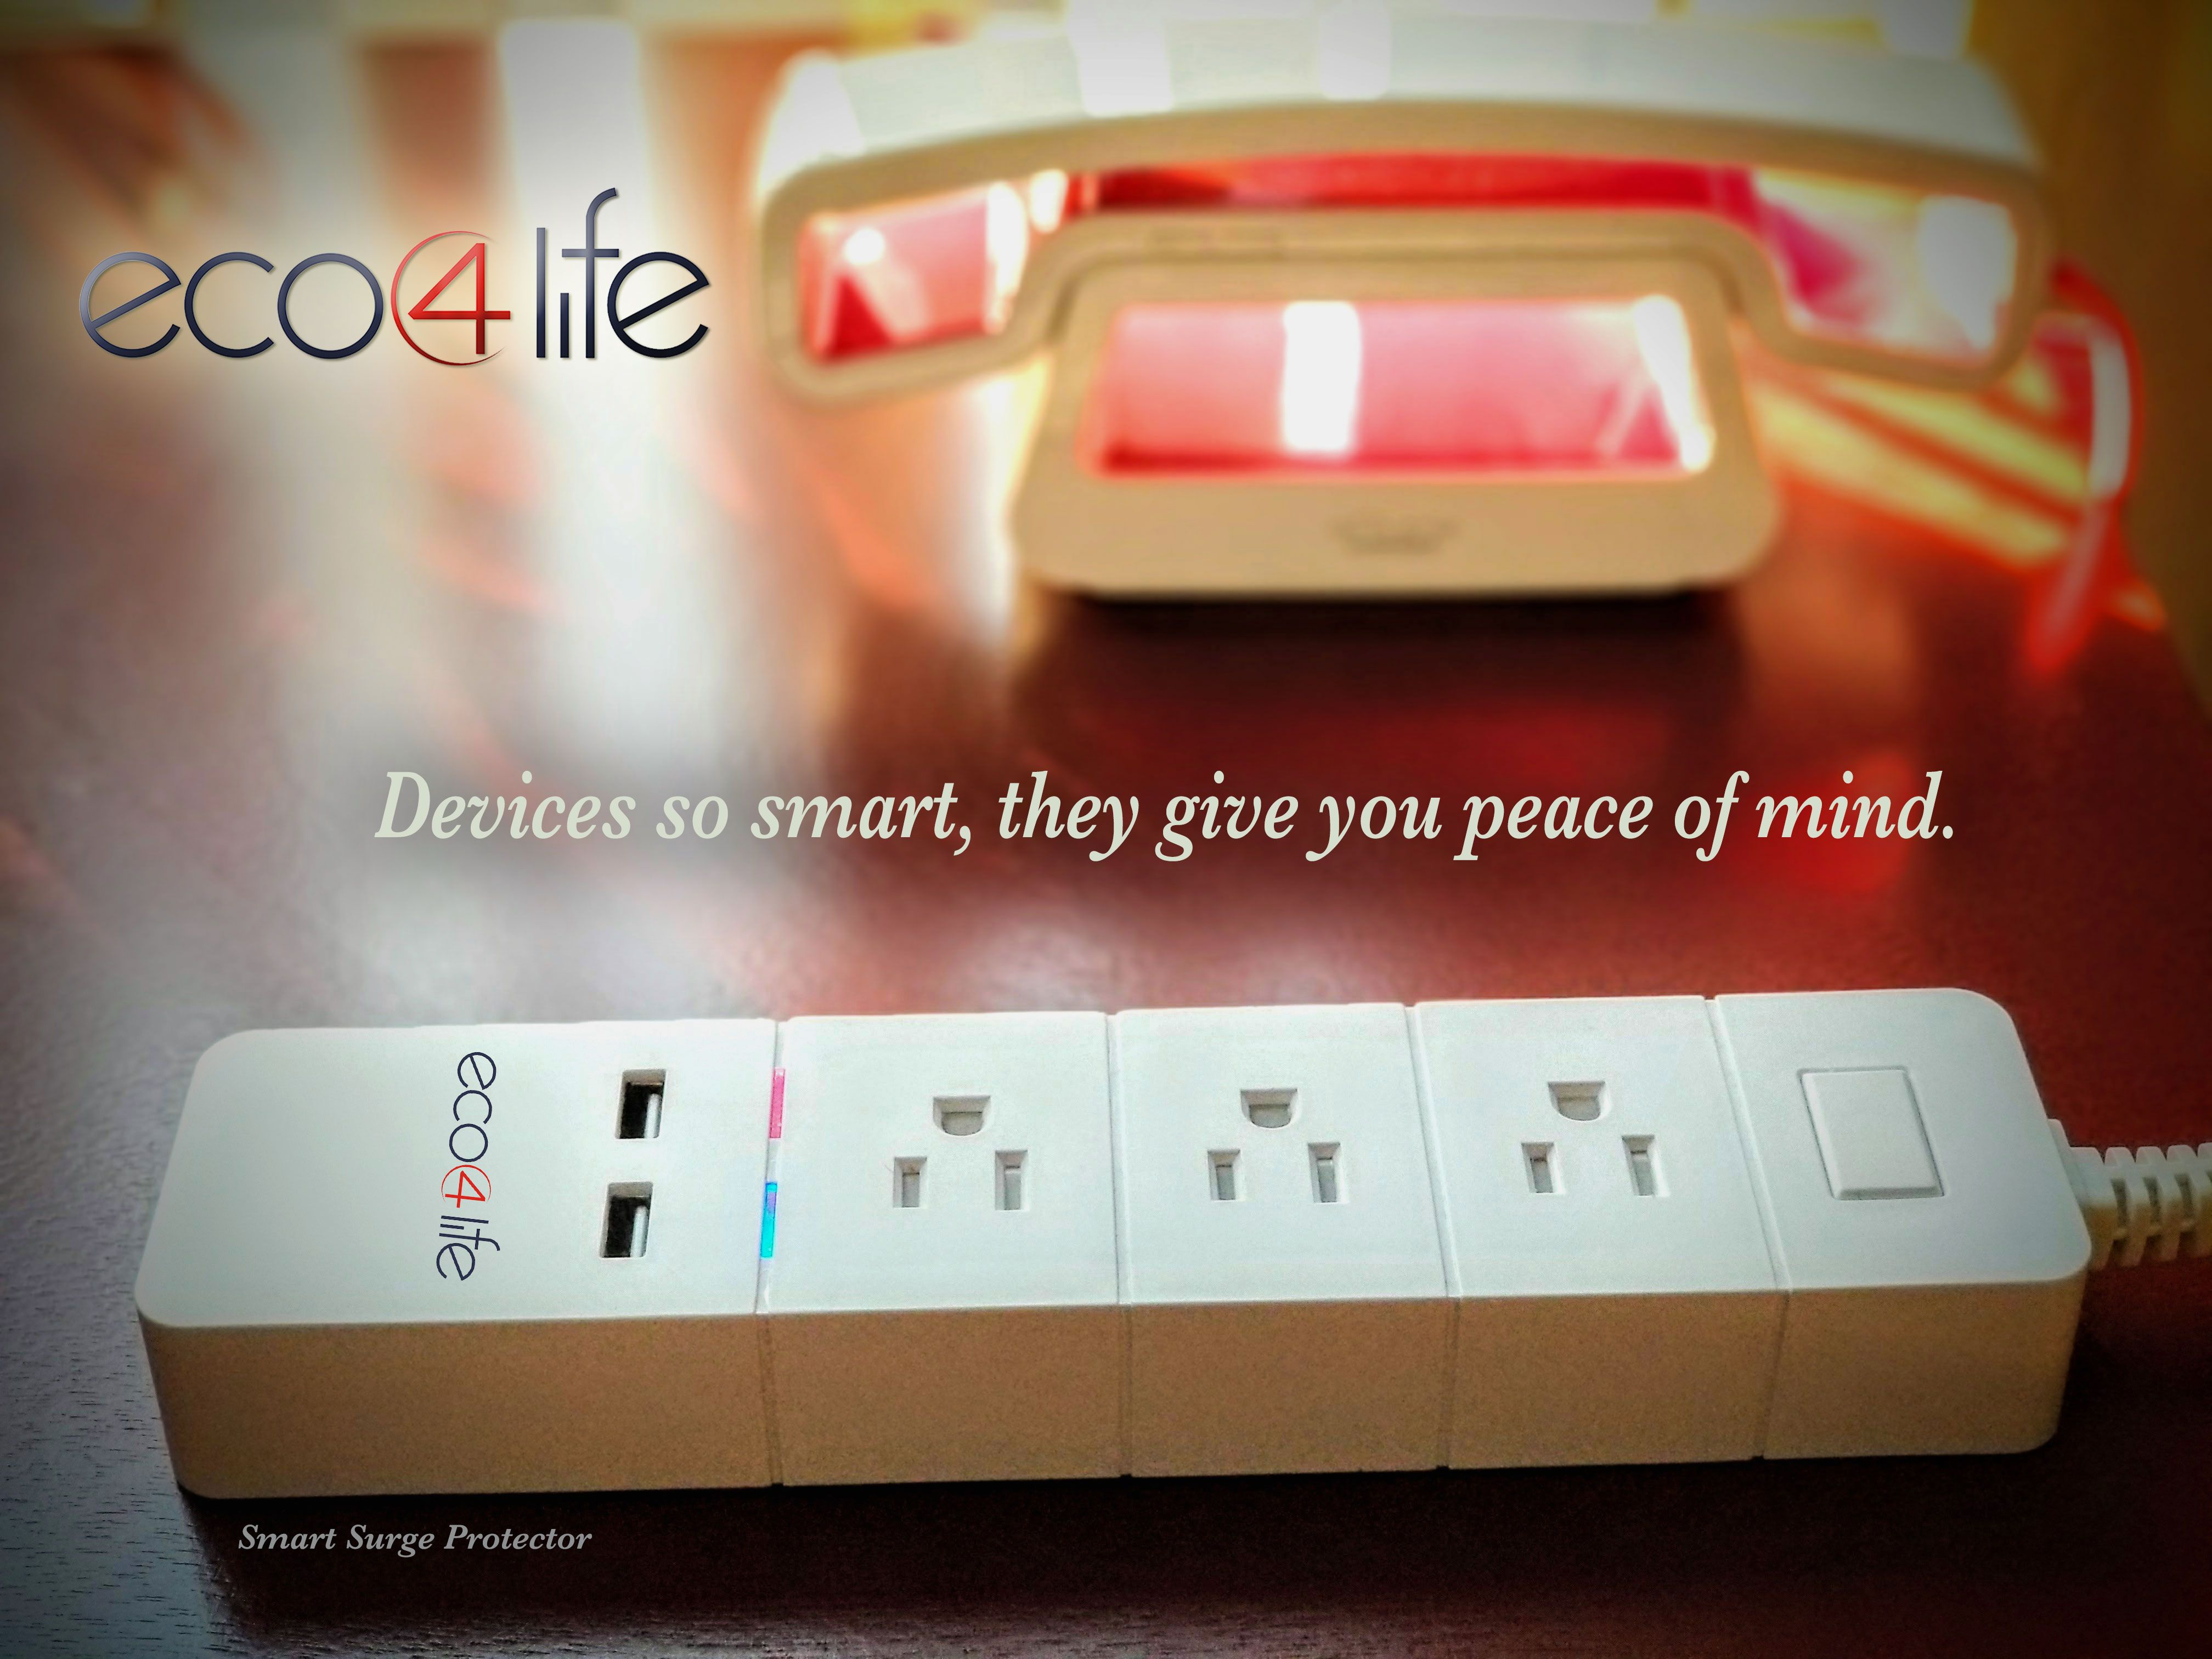 Eco4life Smart Power Strip With Surge Protector Enables You To